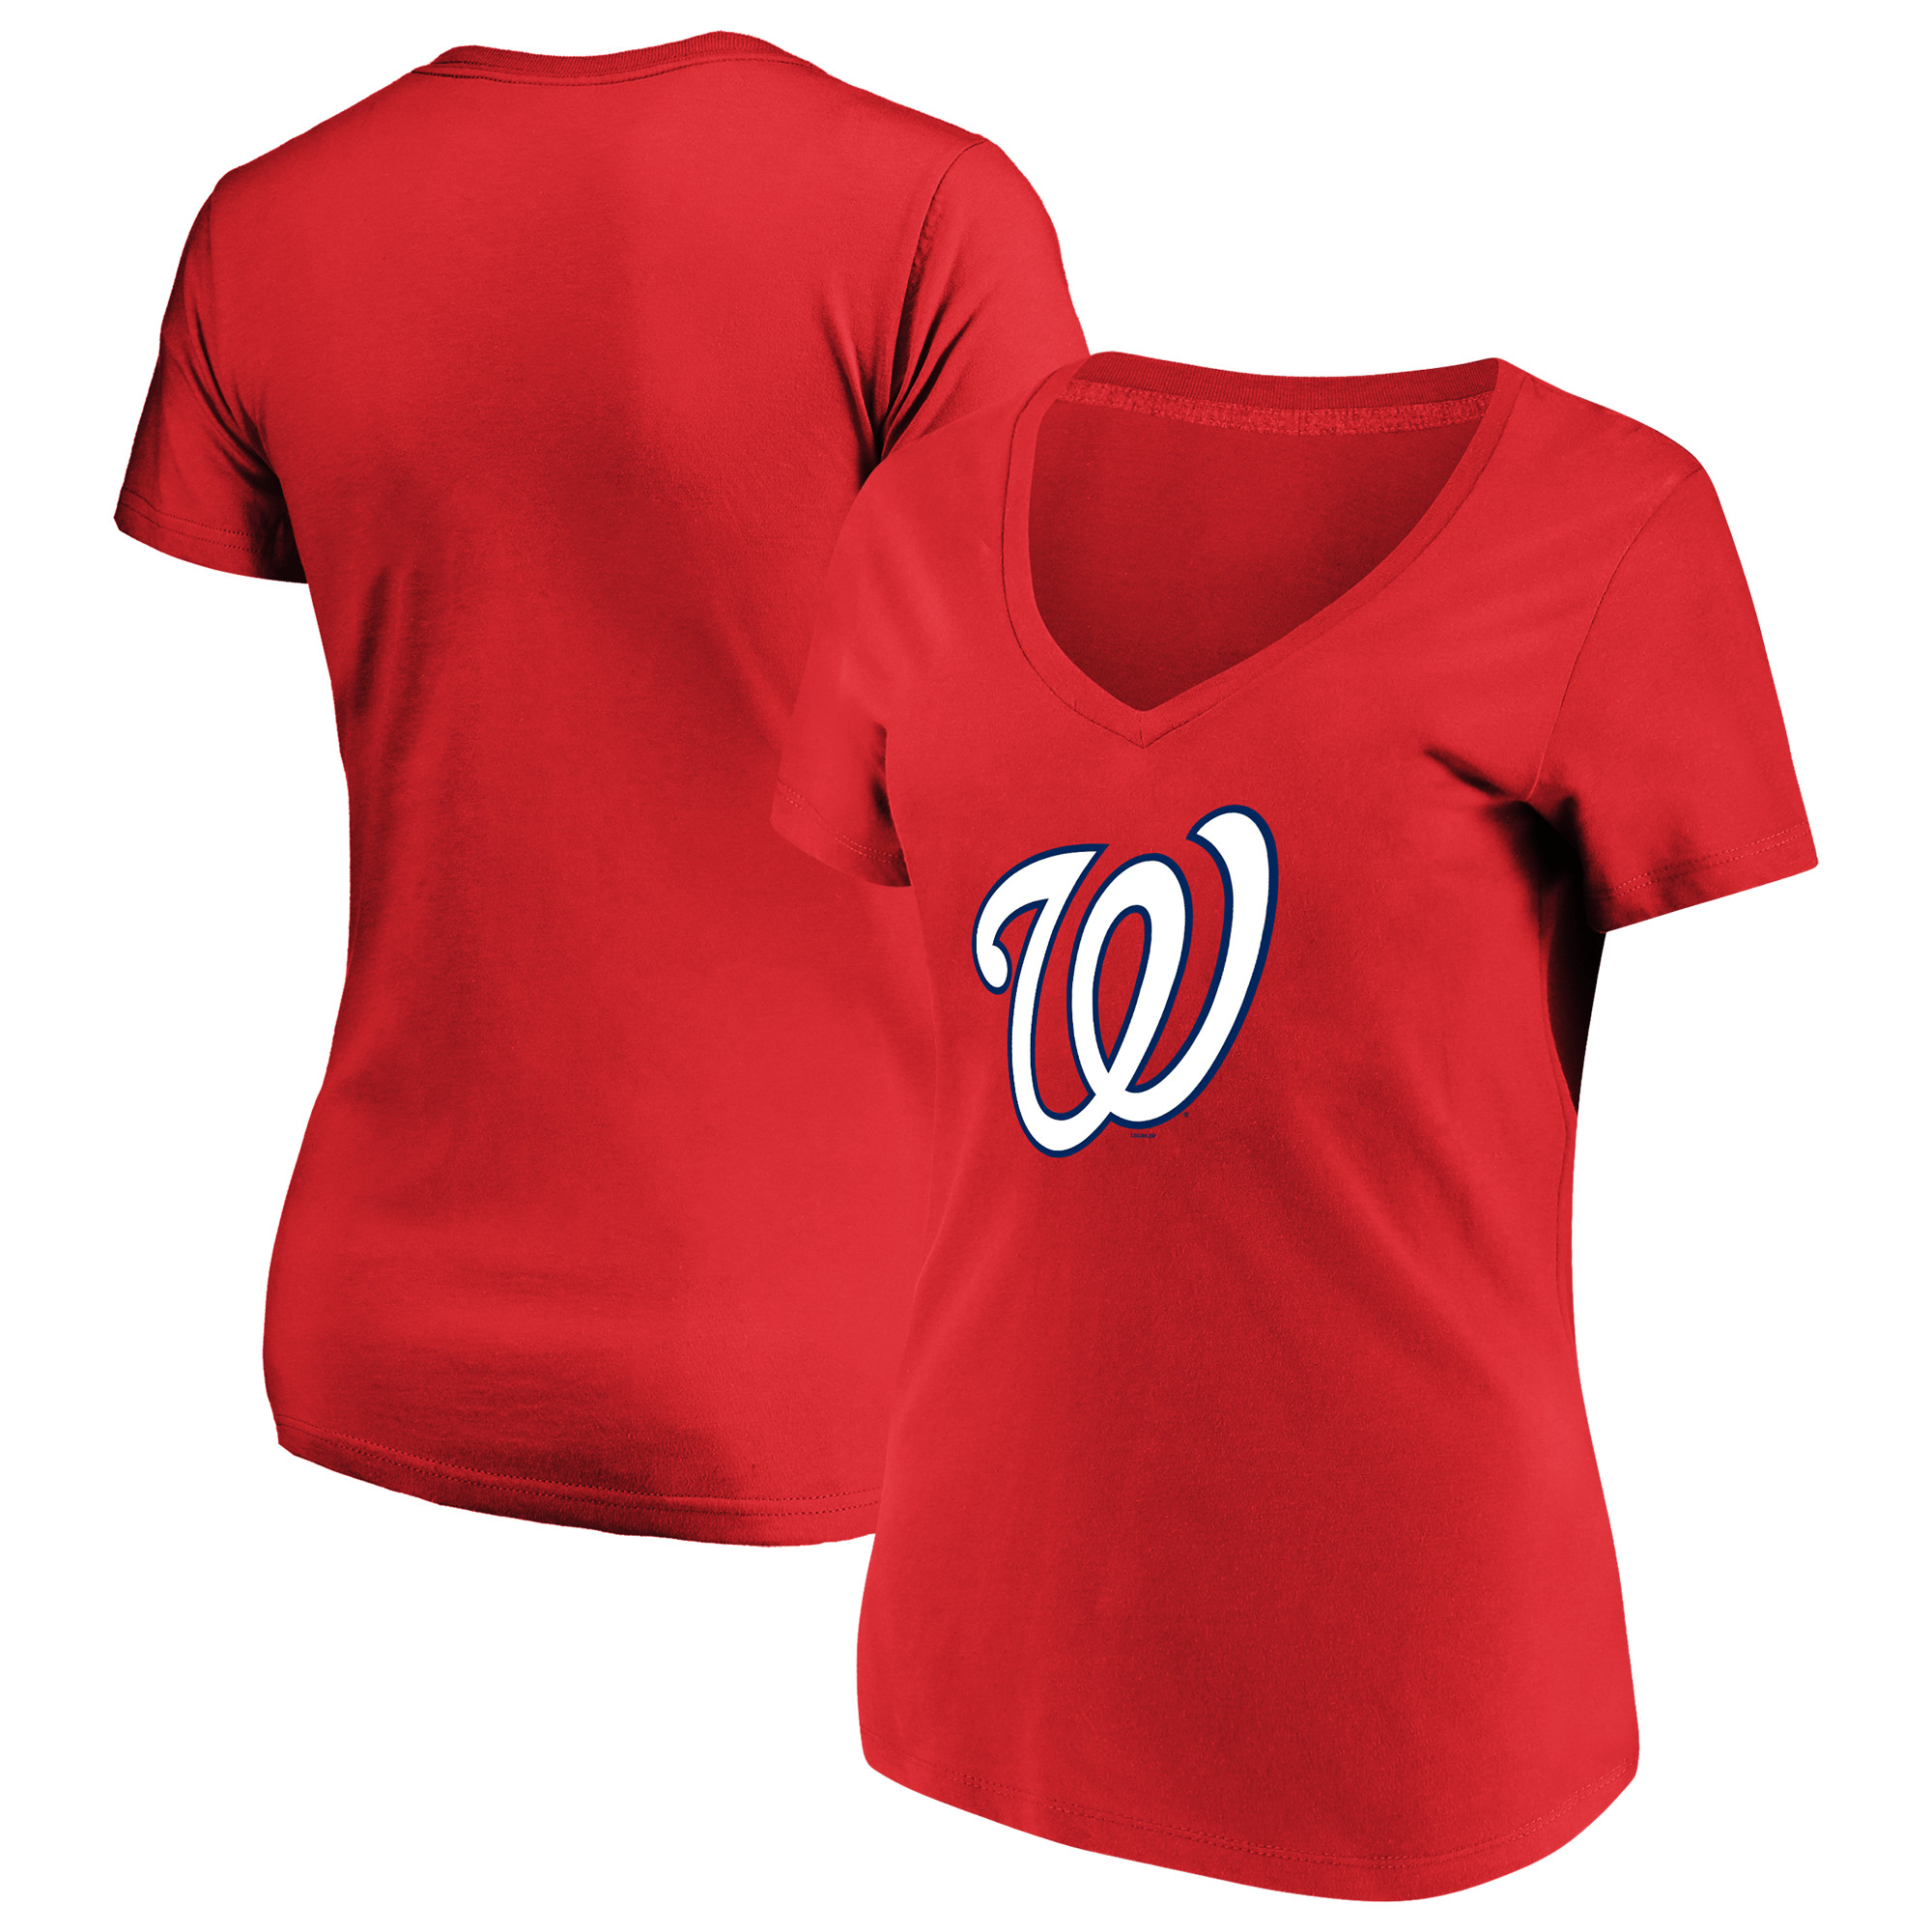 Women's Majestic Red Washington Nationals Top Ranking V-Neck T-Shirt